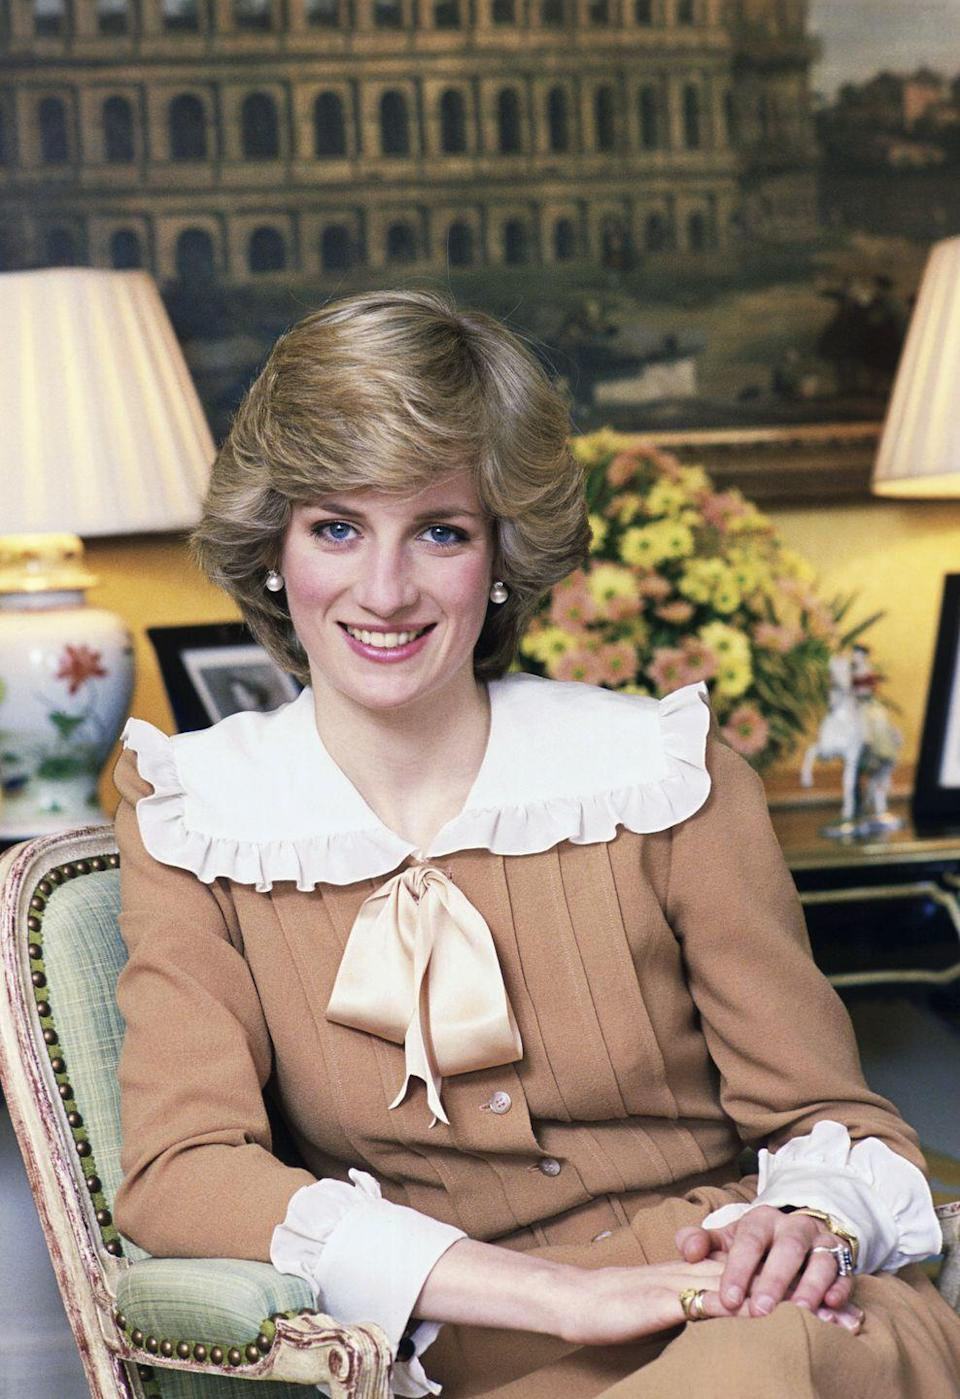 <p>The Princess of Wales at Kensington Palace in February 1983 wearing a camel dress with a 1930's style wide collar complete with ruffles and a bow.</p>